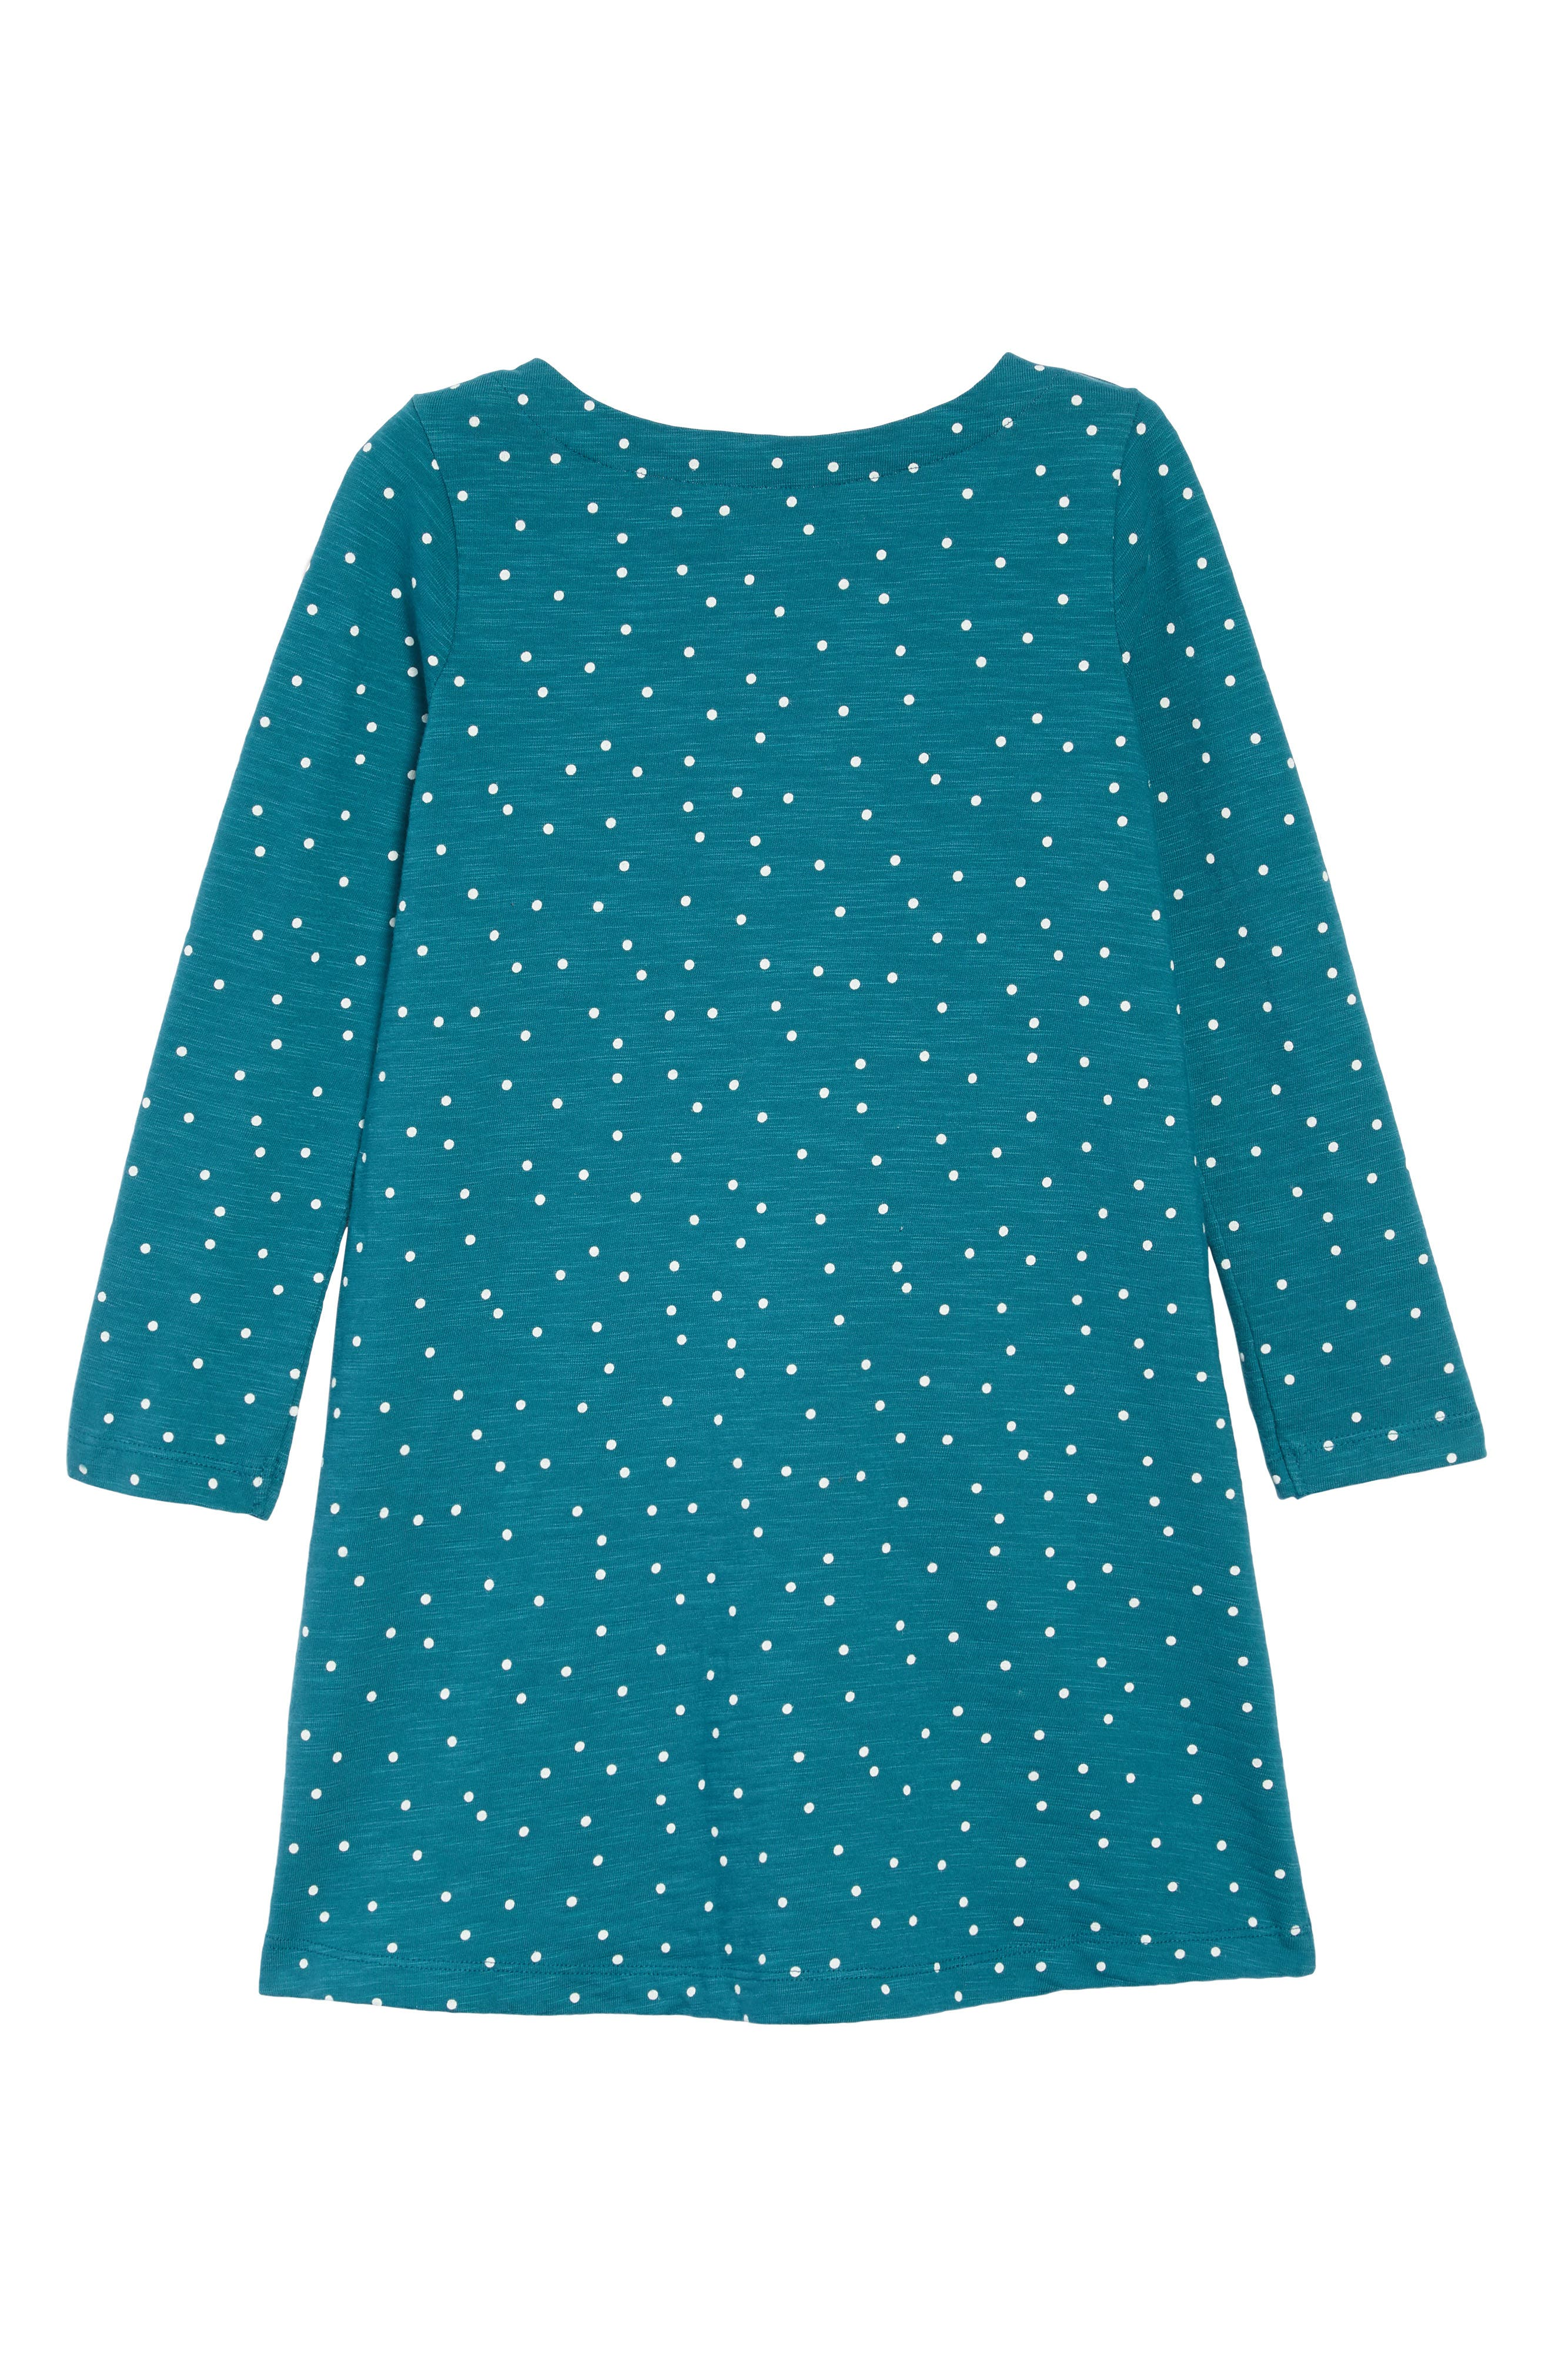 Mini Boden Spotty Animal Appliqué Dress,                             Alternate thumbnail 2, color,                             DGR DRAKE GREEN PENGUIN